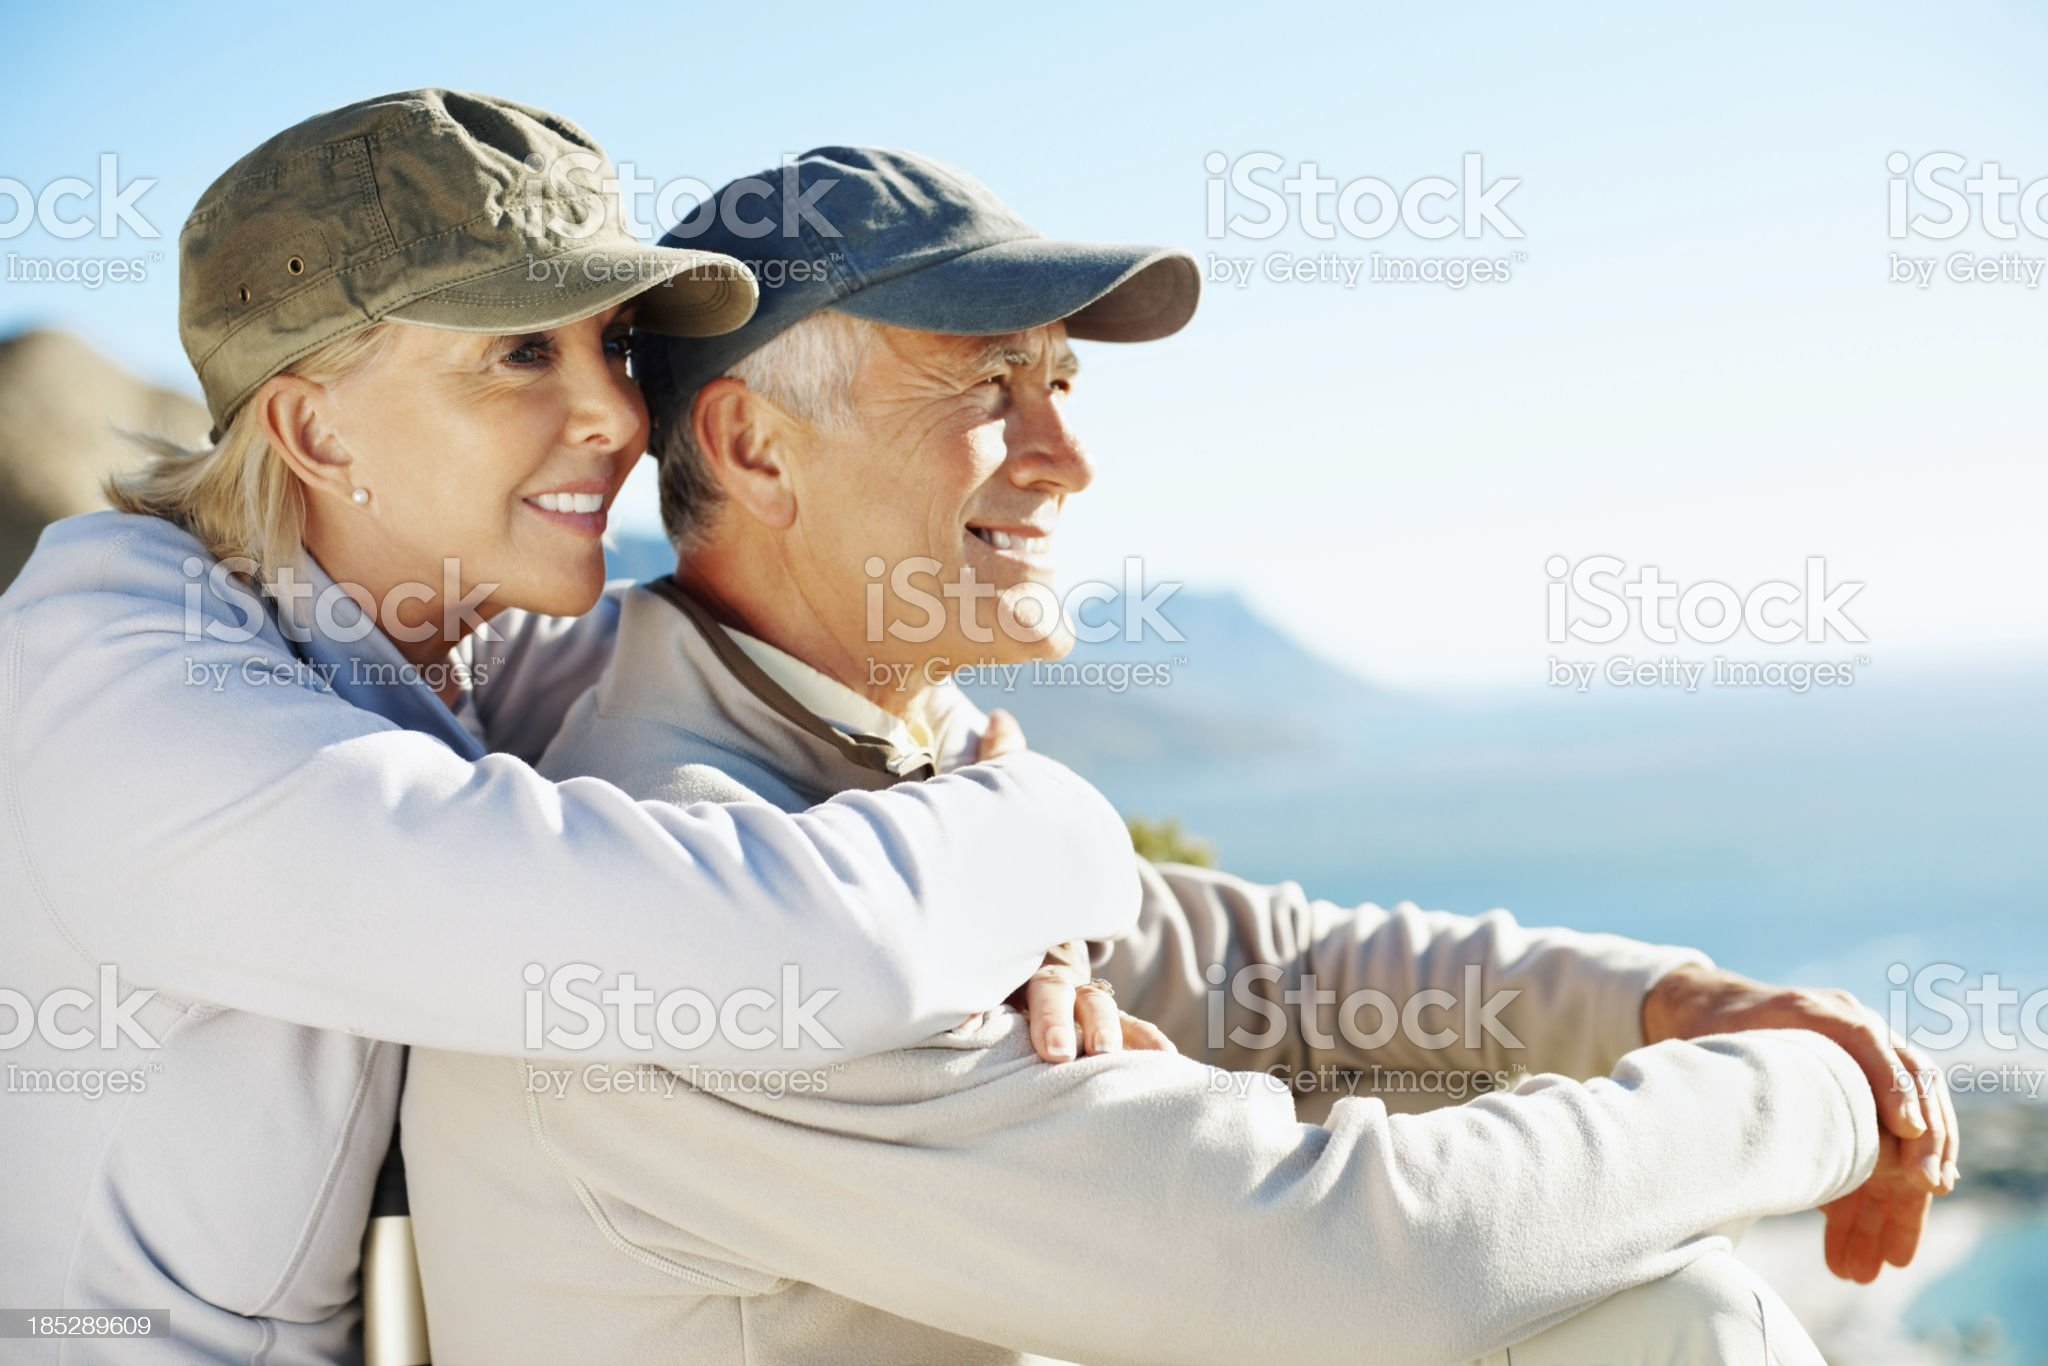 Enjoying our love for the outdoors royalty-free stock photo